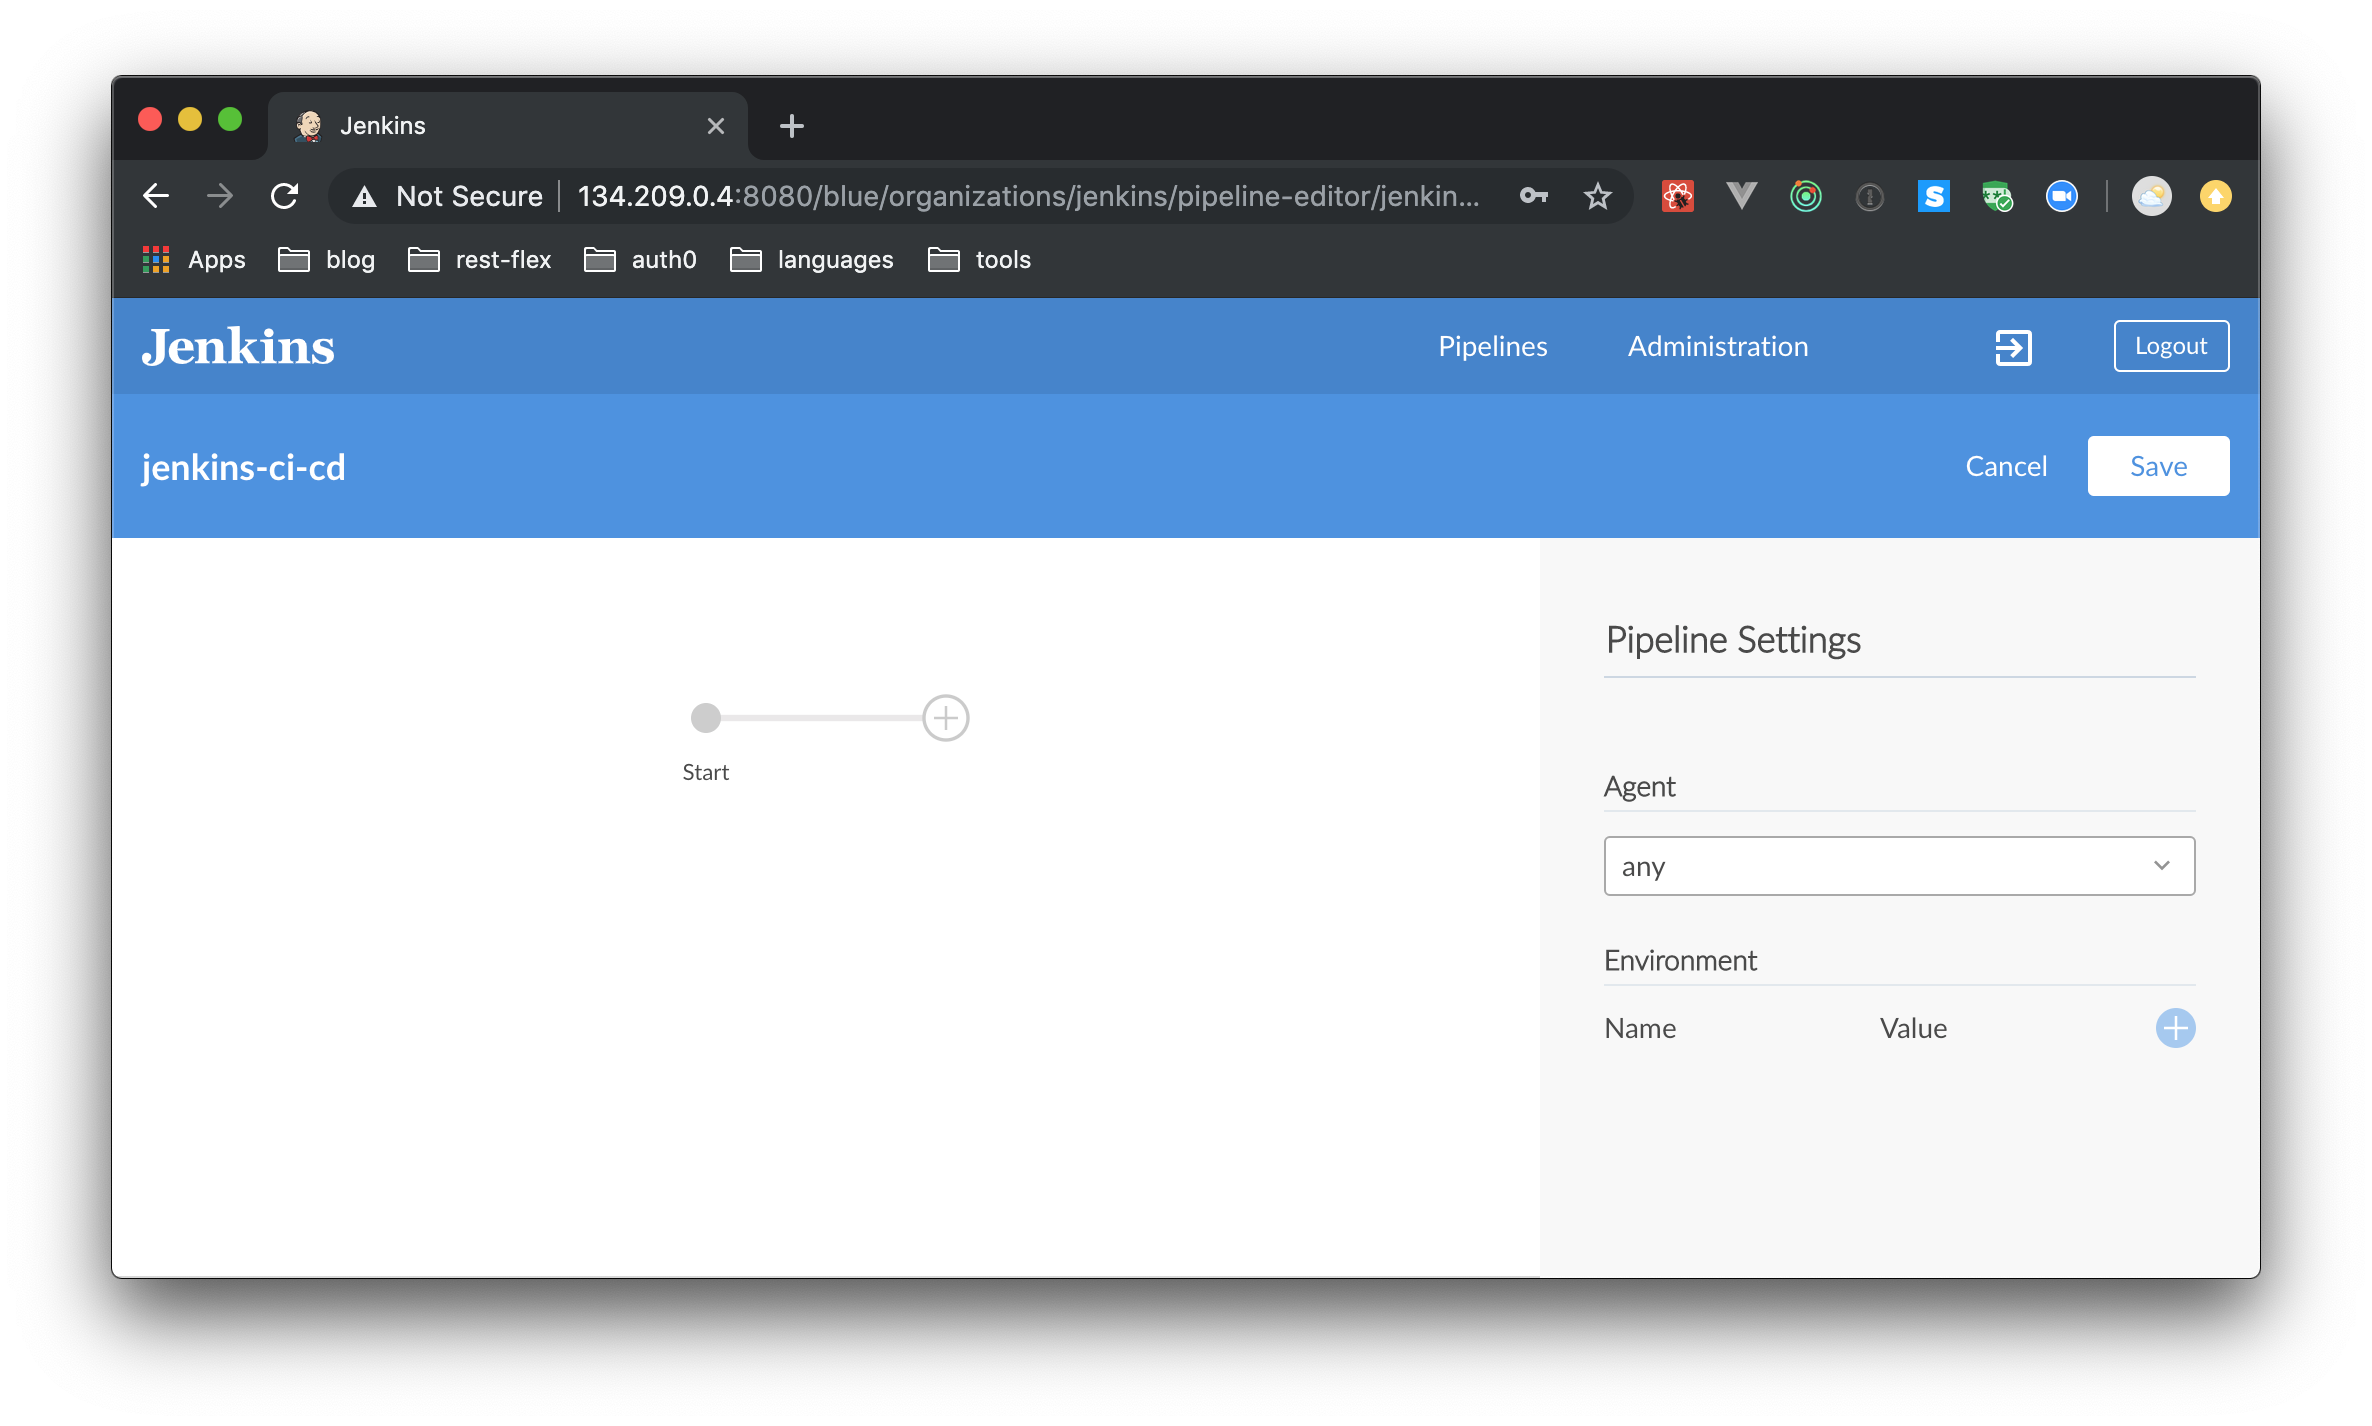 Using Jenkins to create a new pipeline on a GitHub repository.